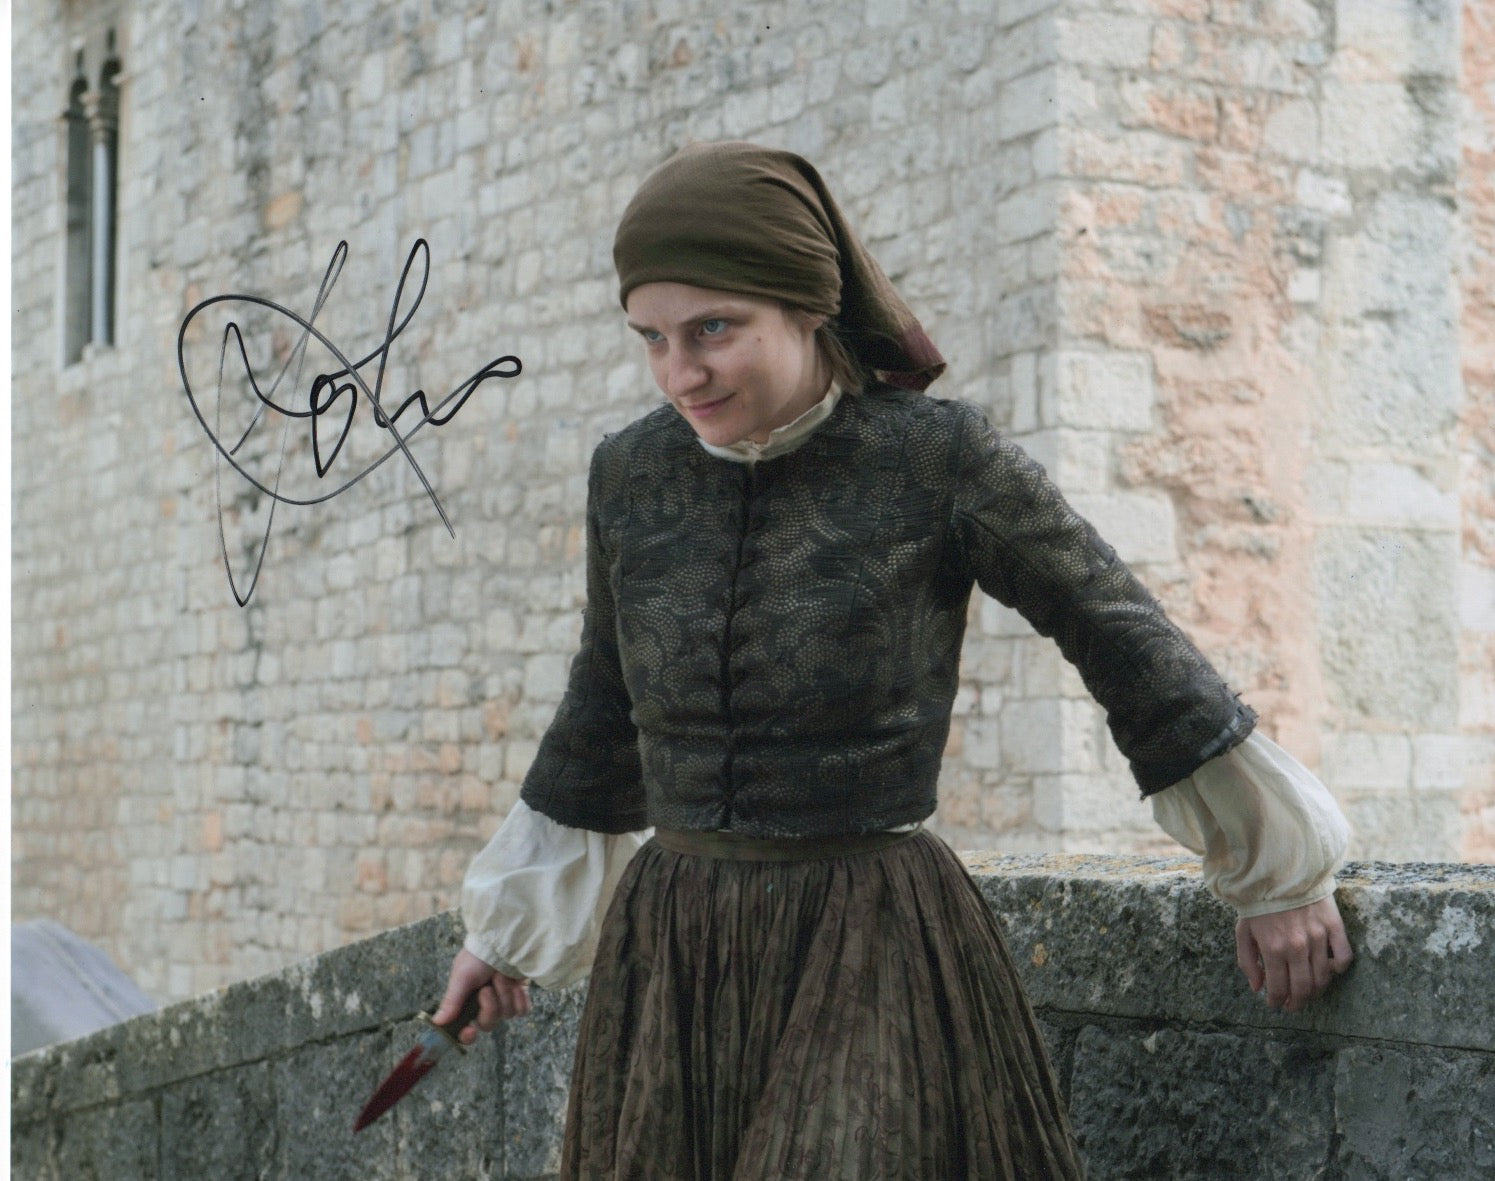 Faye Marsey Game of Thrones Signed Autograph 8x10 Photo #2